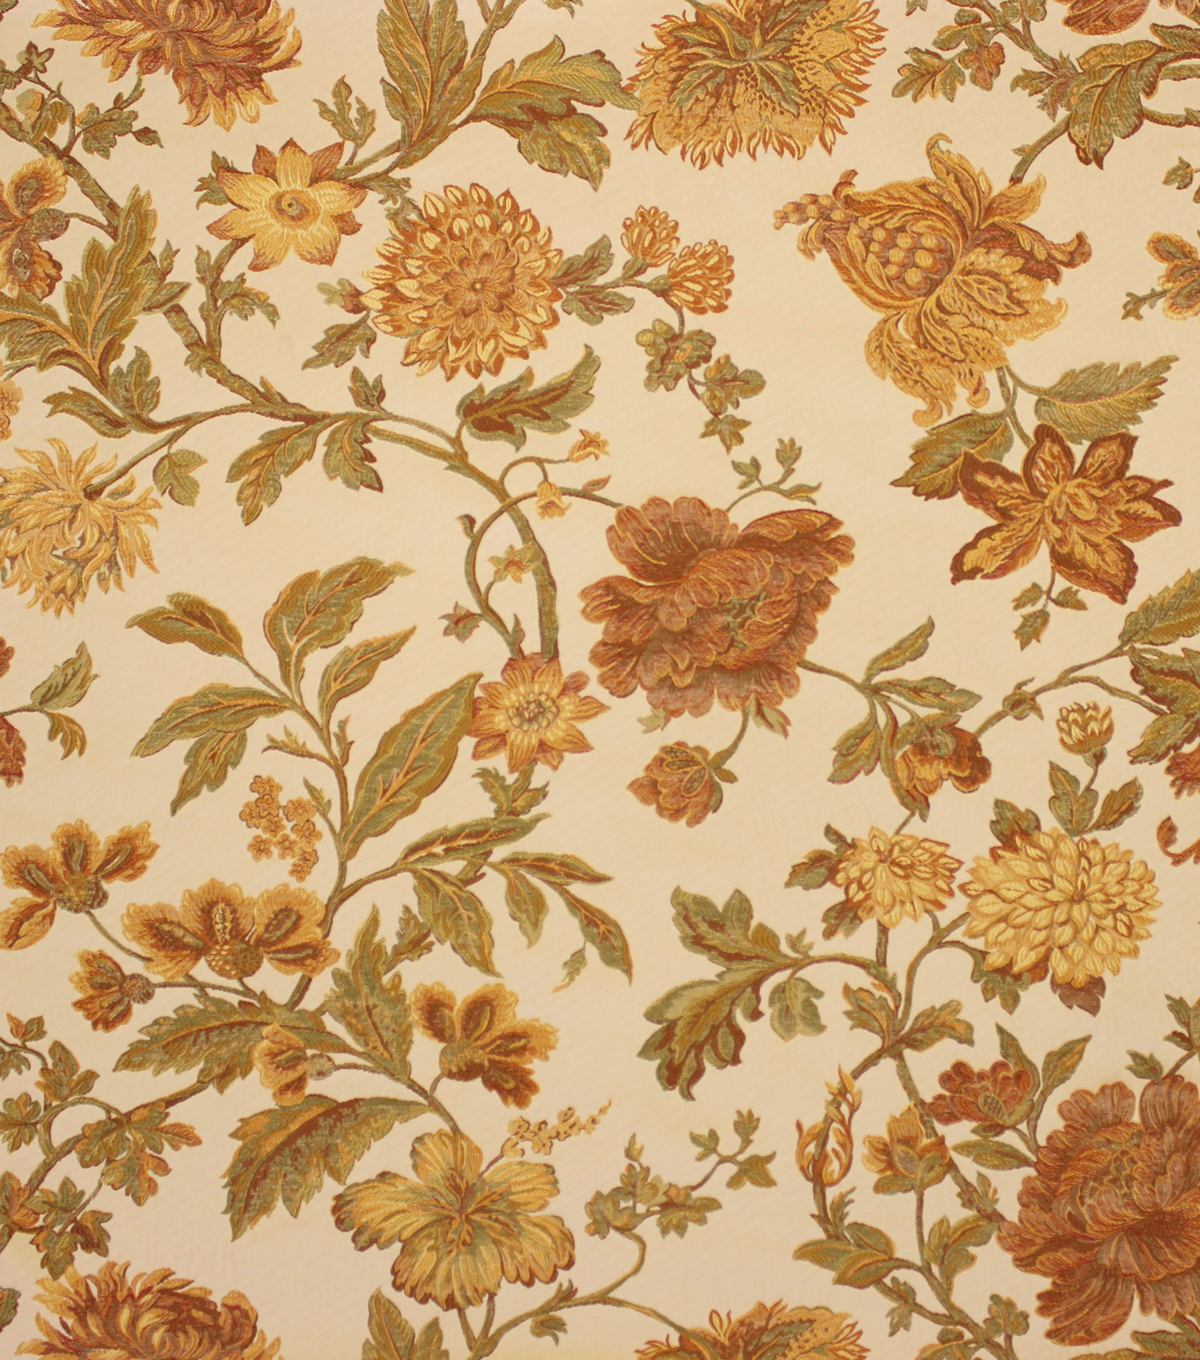 Home Decor 8\u0022x8\u0022 Fabric Swatch-Upholstery Fabric Barrow M8596-5110 Saffron